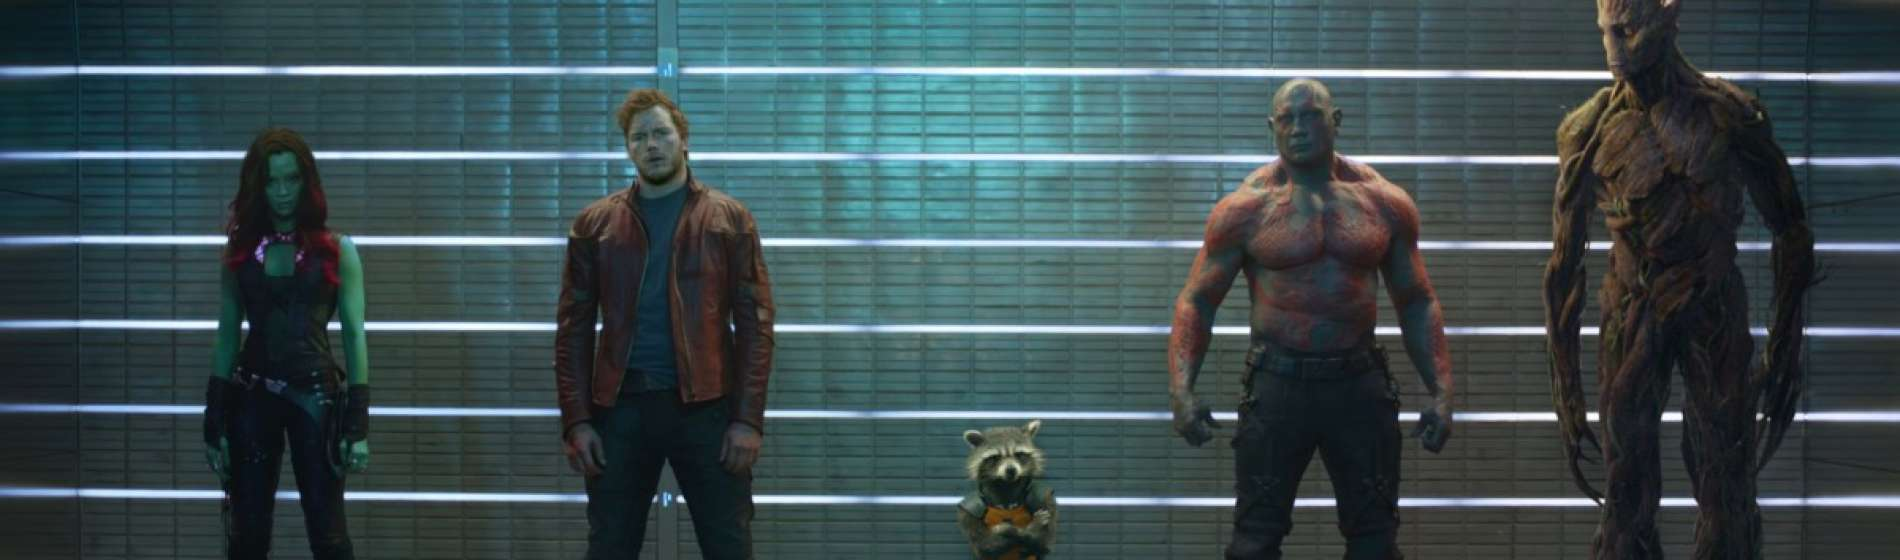 Guardians of the Galaxy Vol 1 Featured